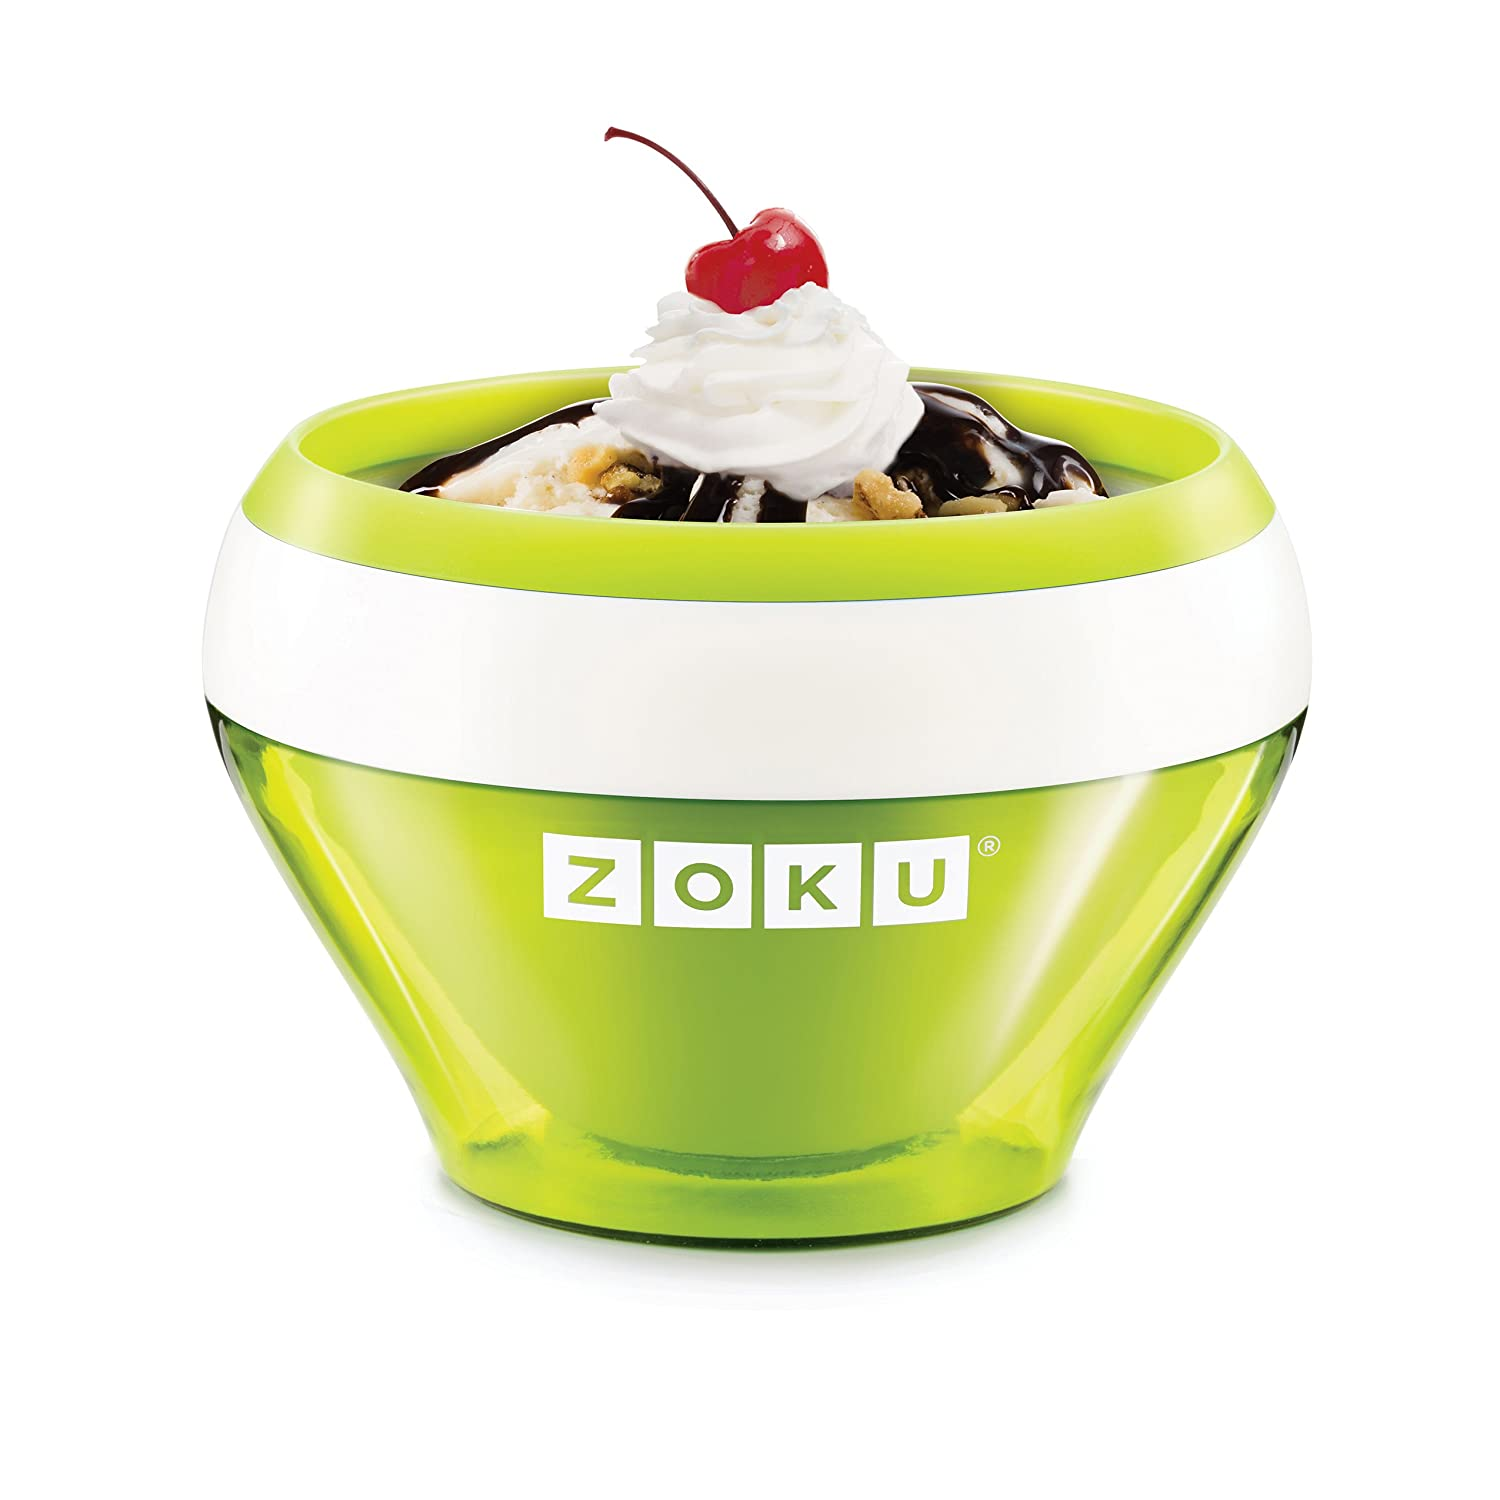 Top 8 Best Ice Cream Maker for Kids Reviews in 2020 4